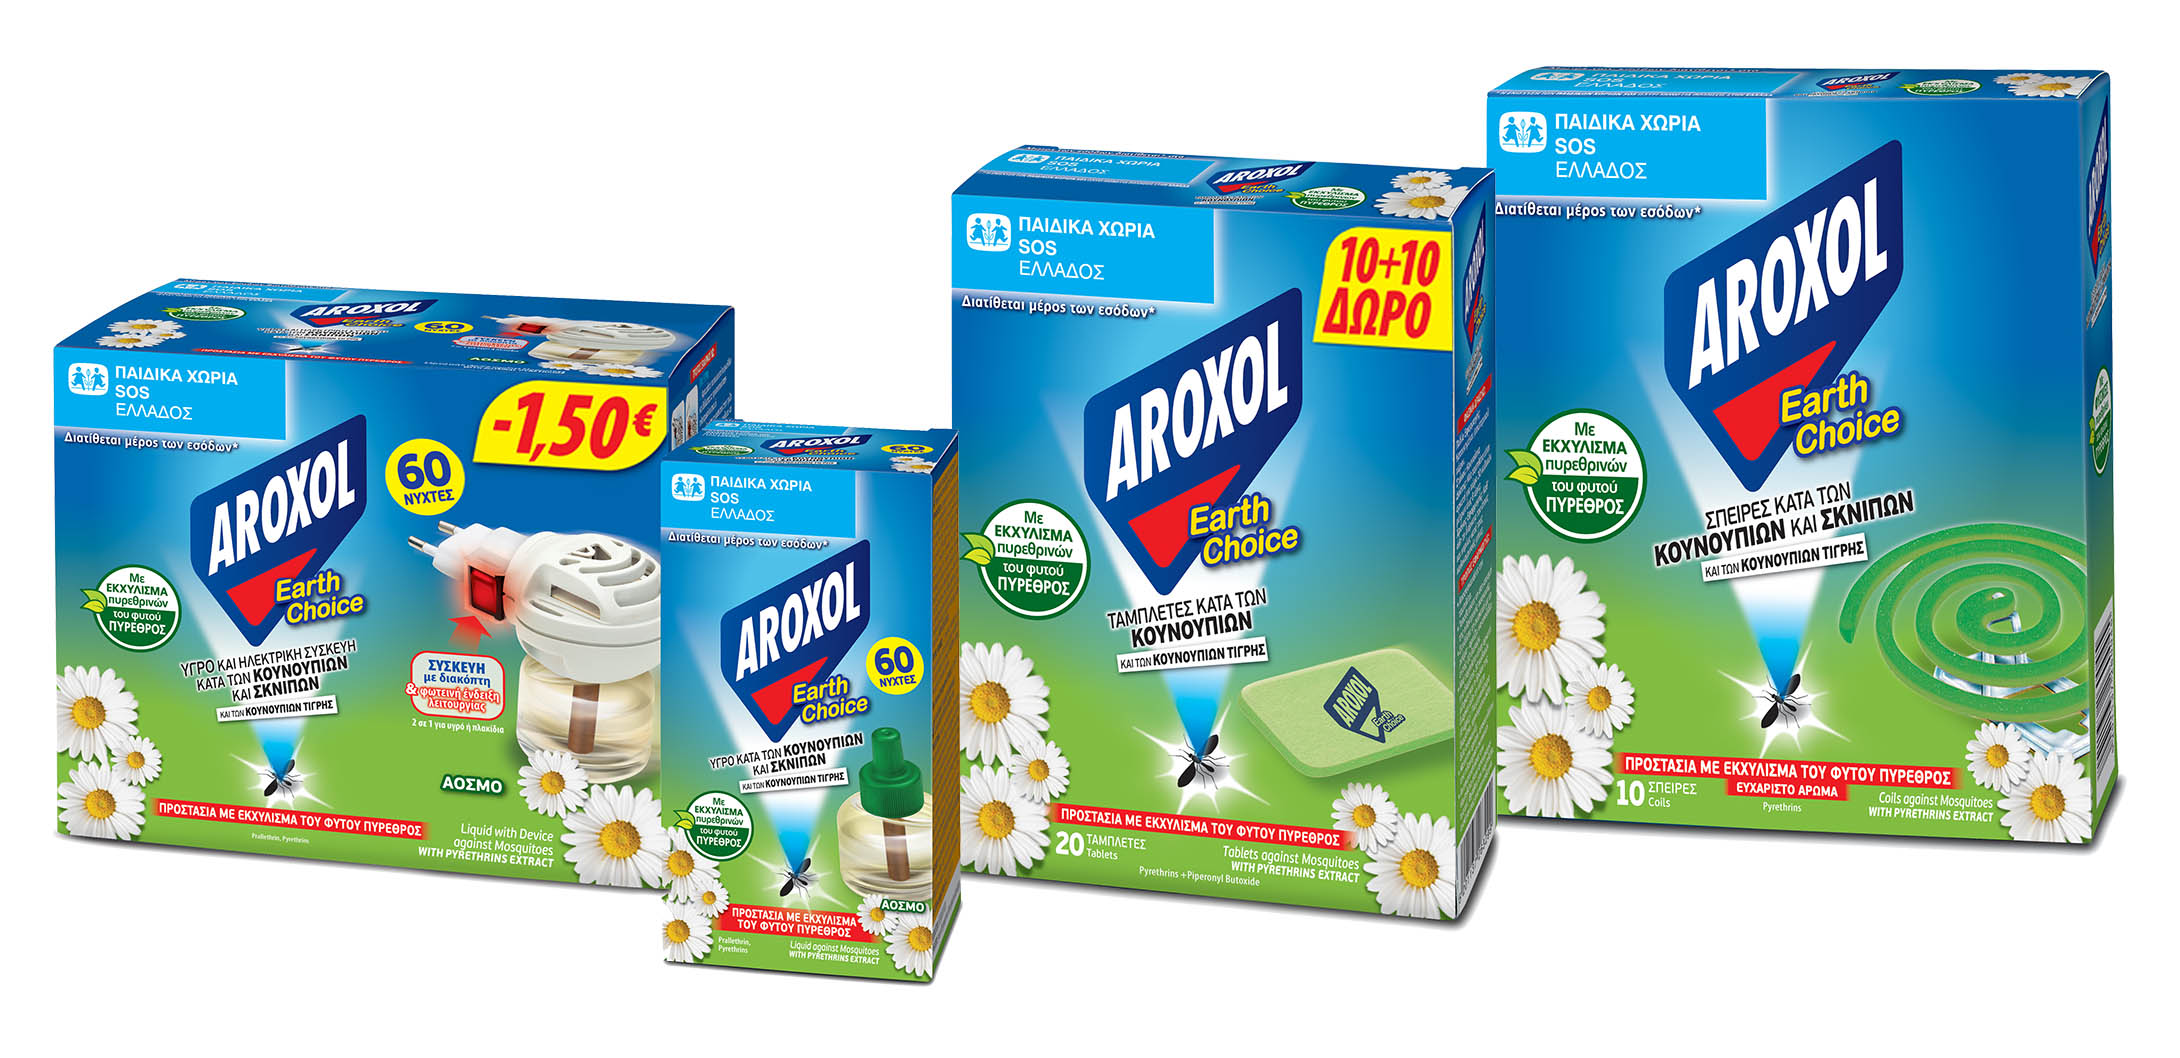 PHOTO AROXOL EARTH CHOICE